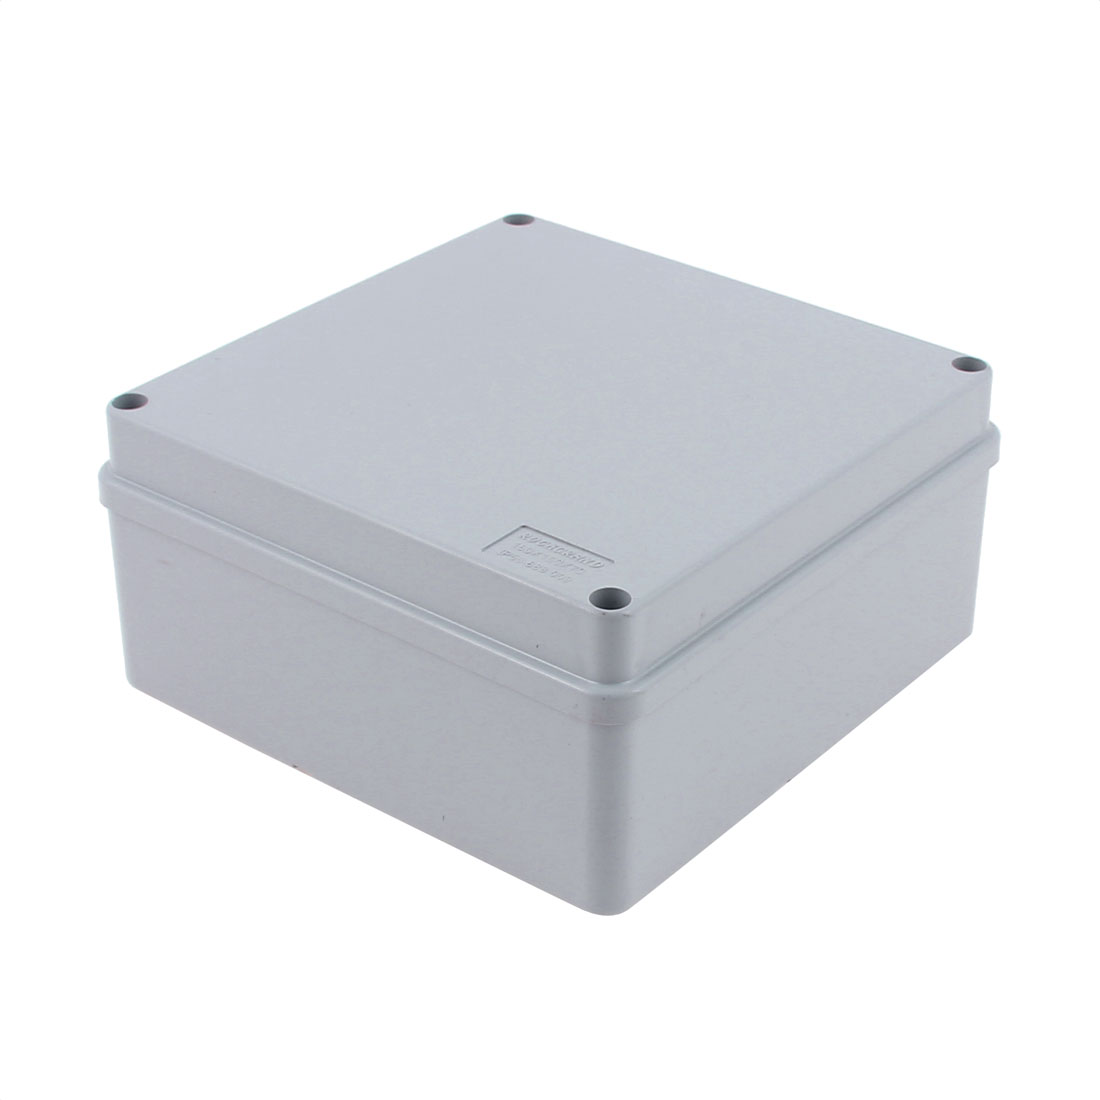 150 x 150 x 70mm Dustproof IP65 Junction Box DIY Terminal Connecting Box Enclosure